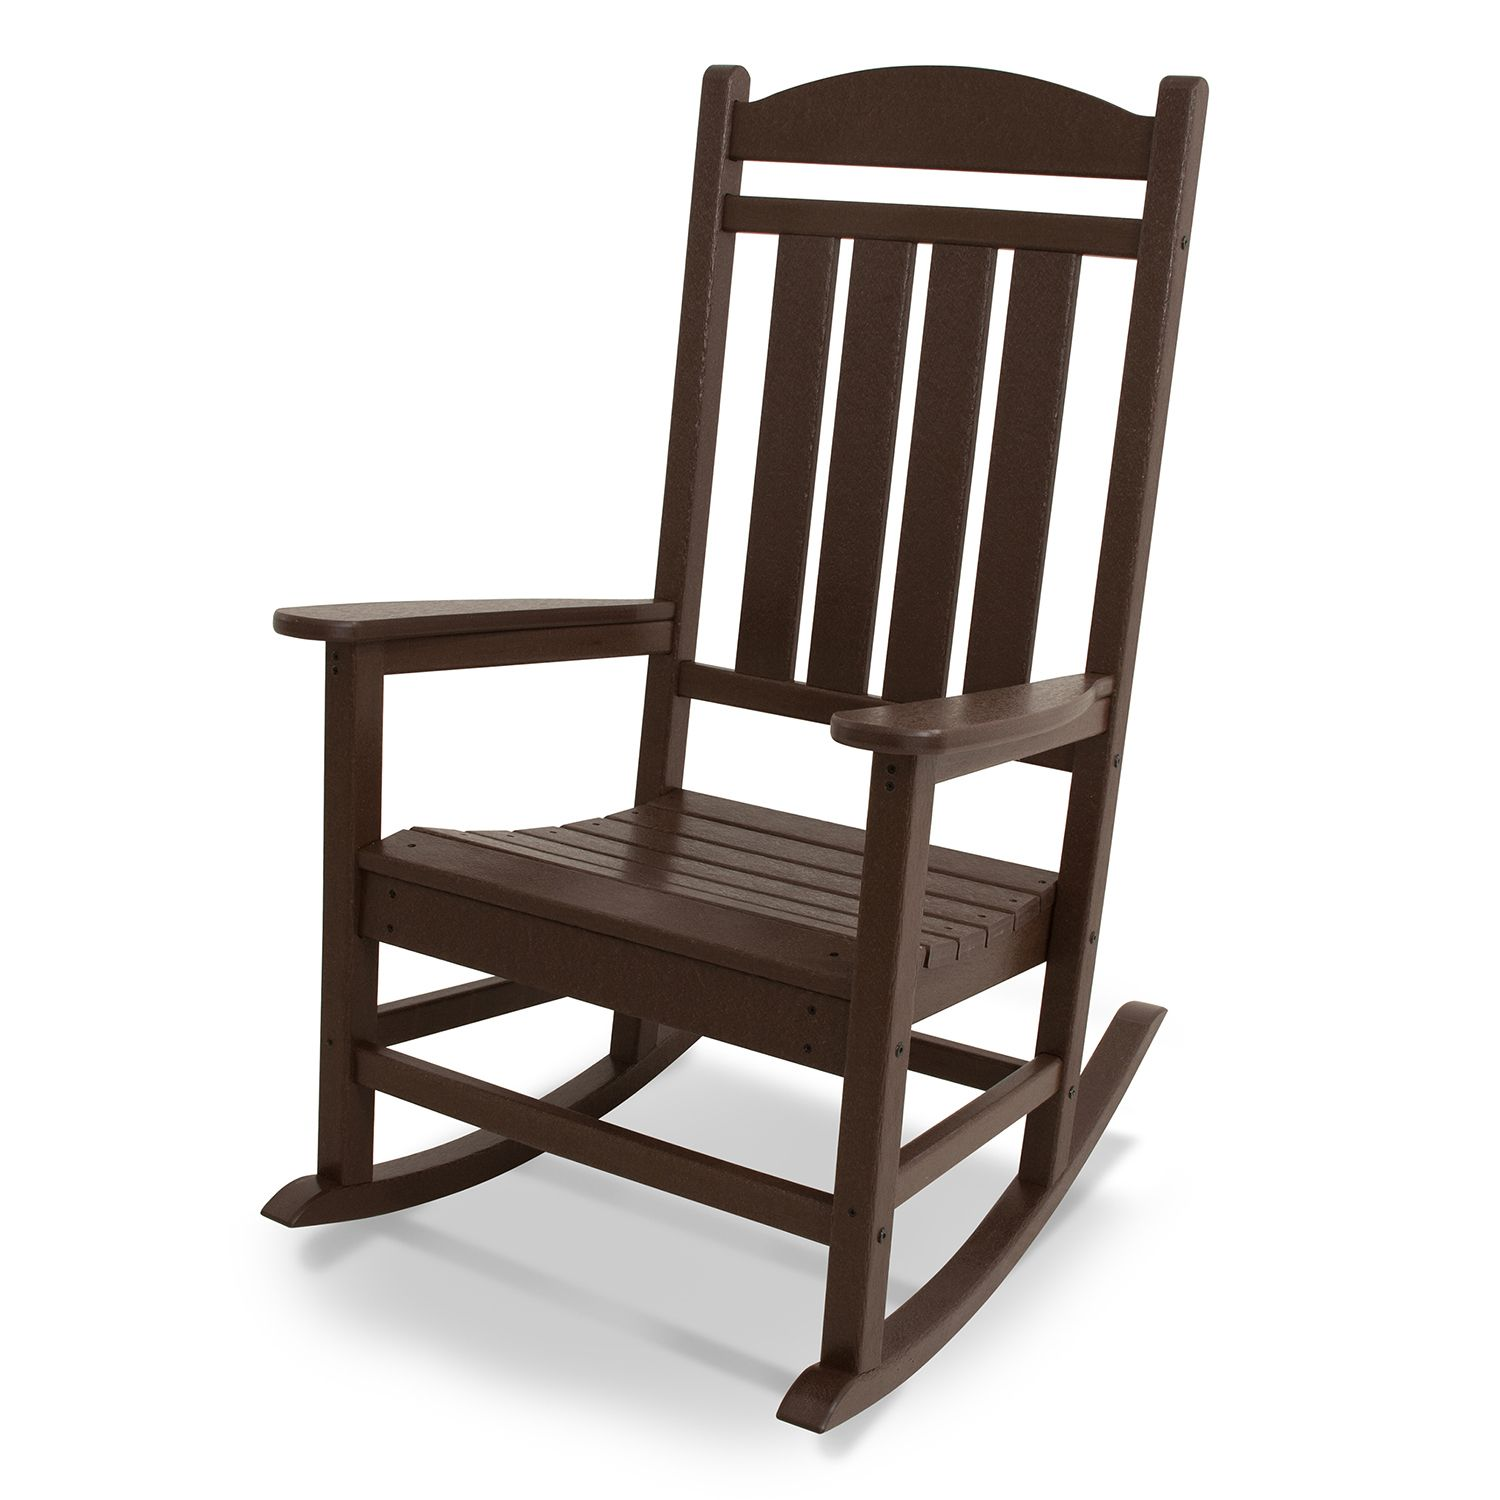 Epic POLYWOOD Presidential Rocking Chair Outdoor